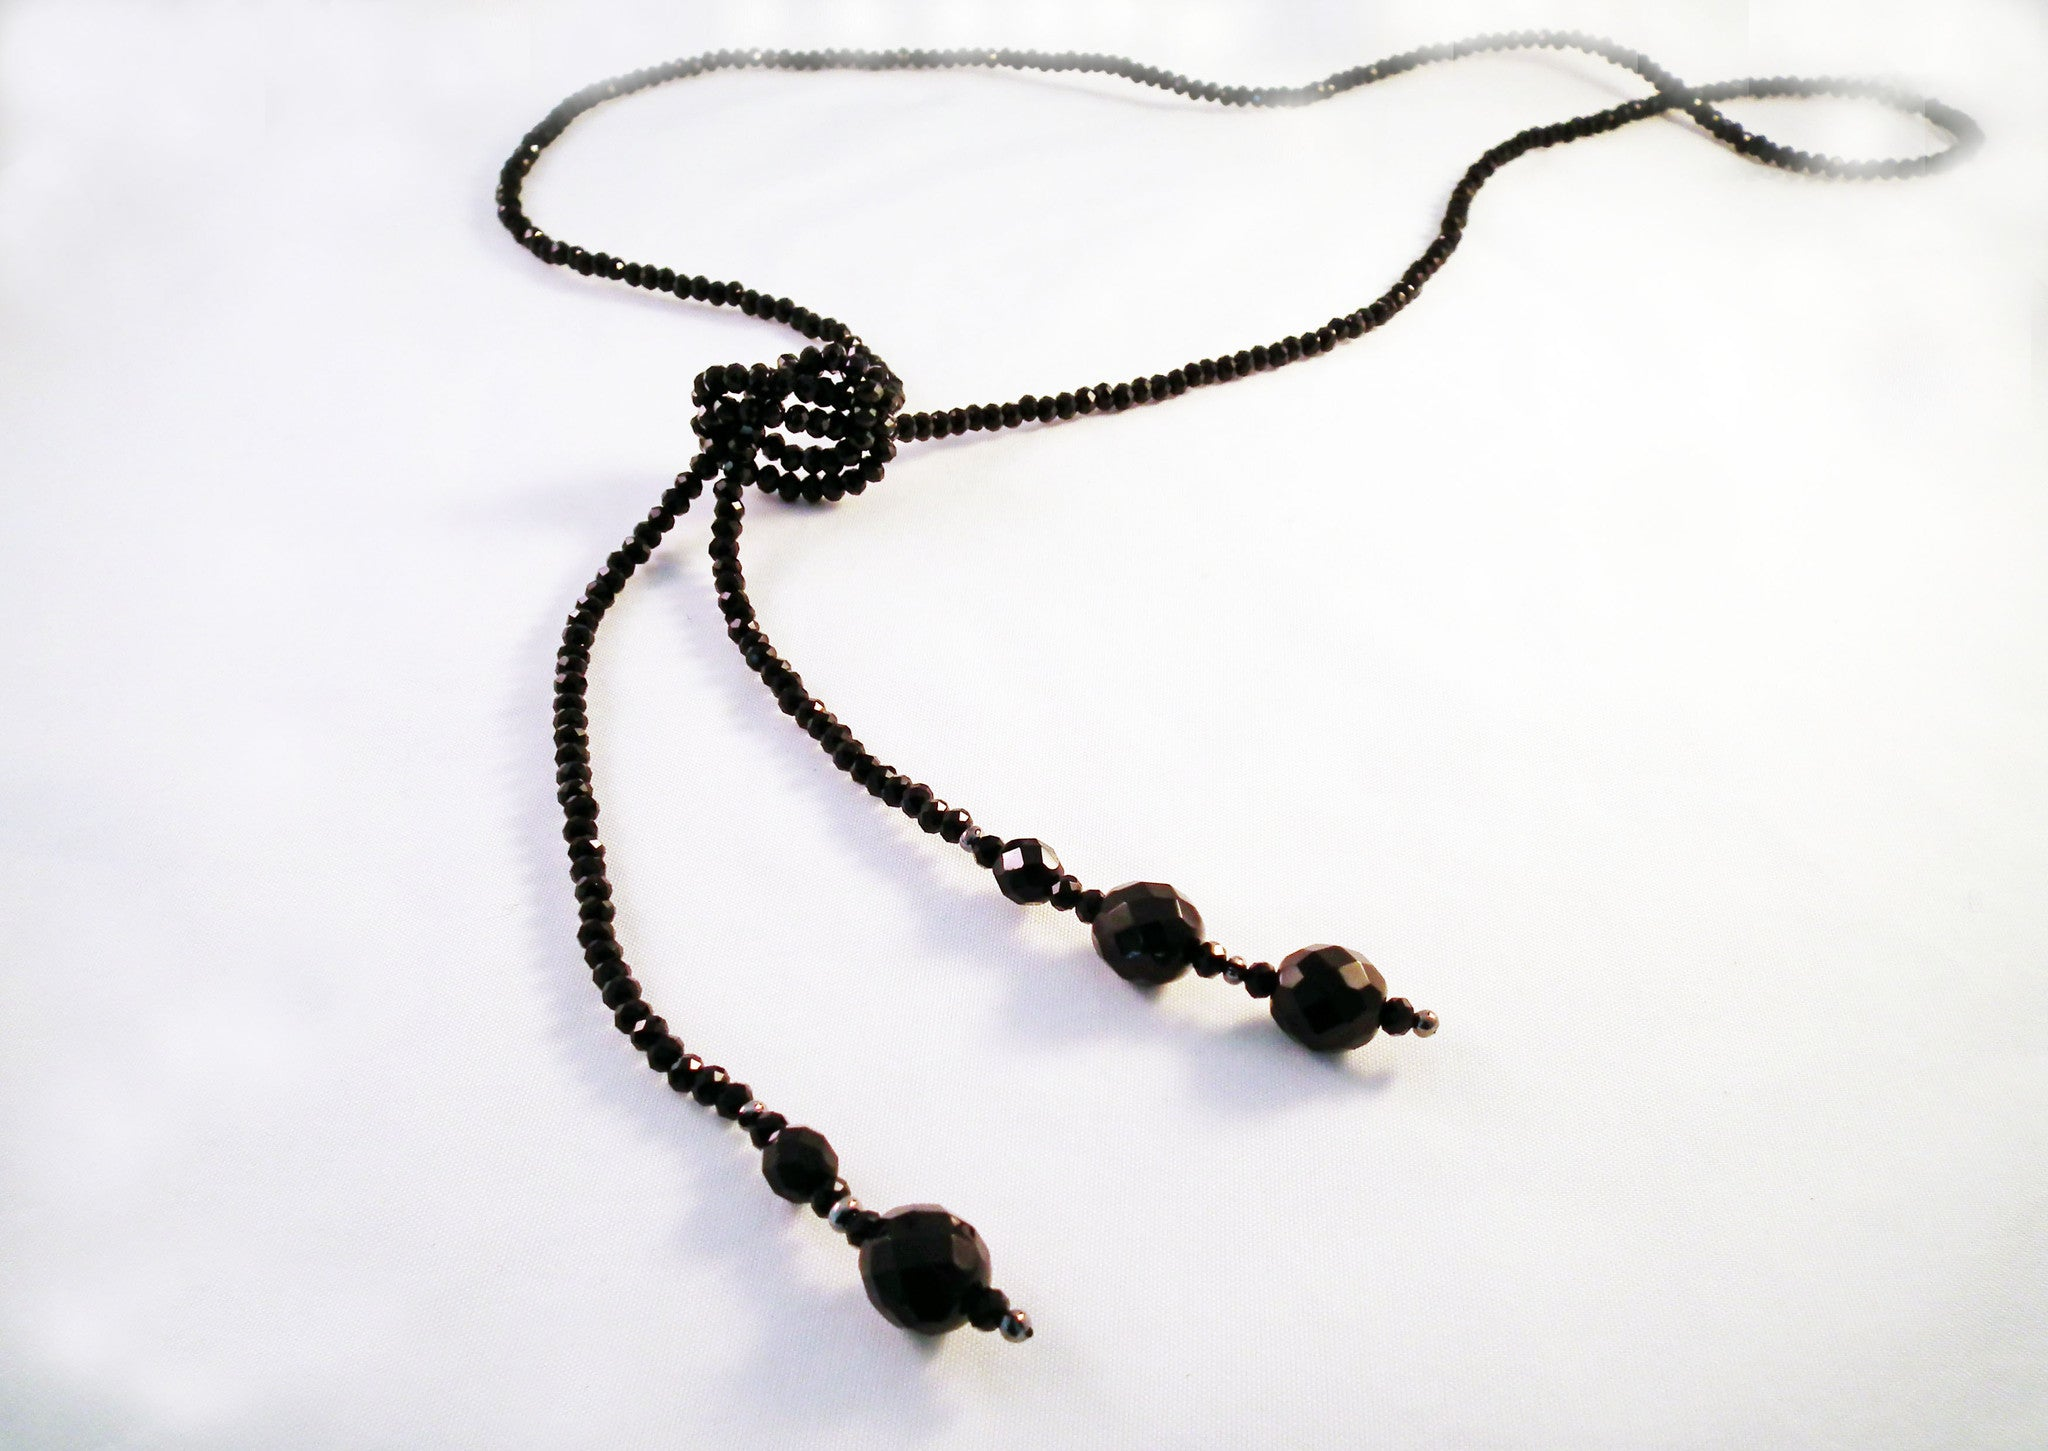 Sautoir à Noeud en Cristal Noir / Black Crystal Knot Necklace - No Mercy Making